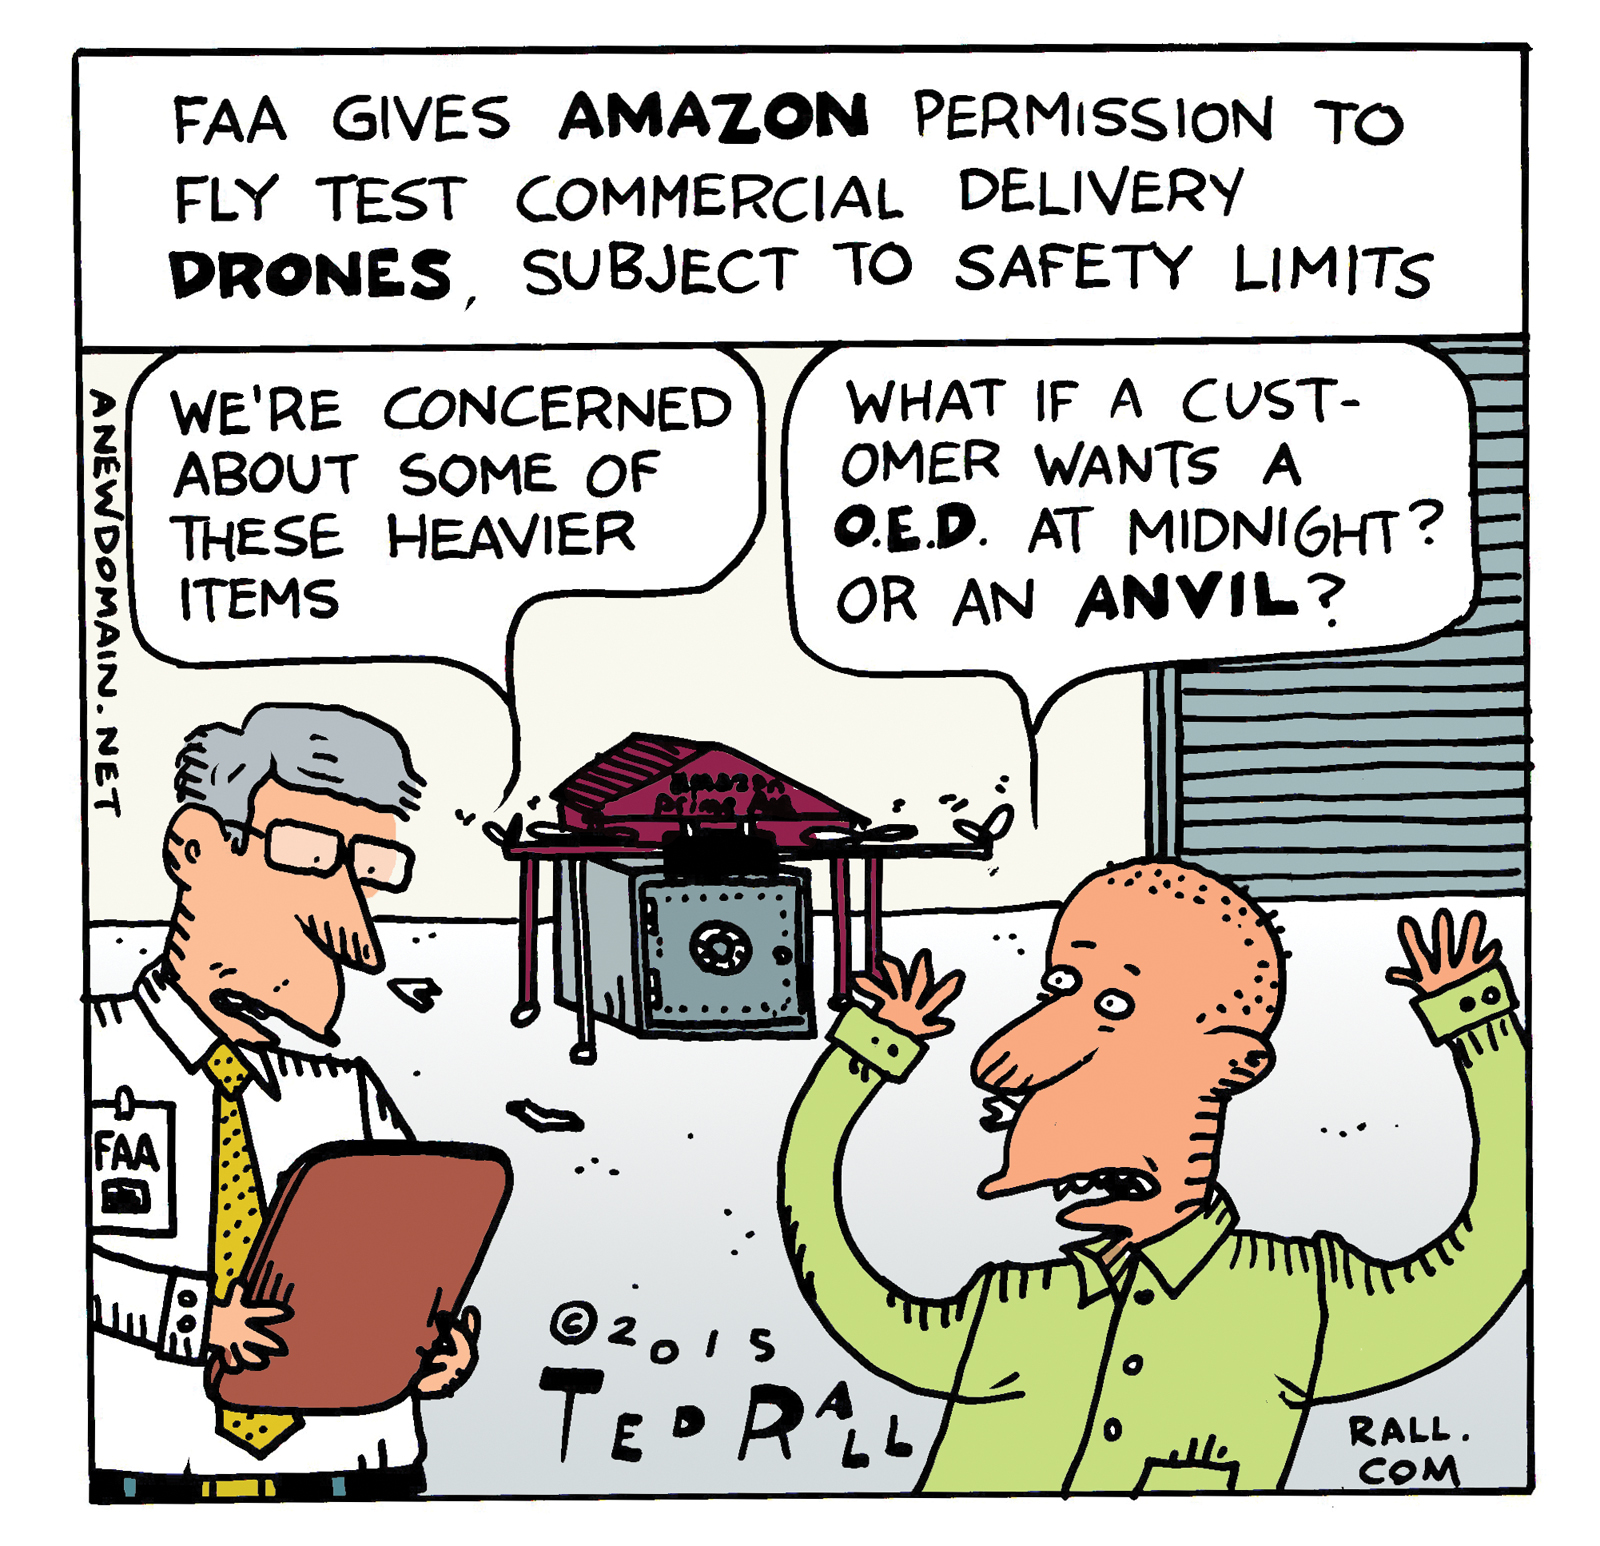 Amazon Drone Tests